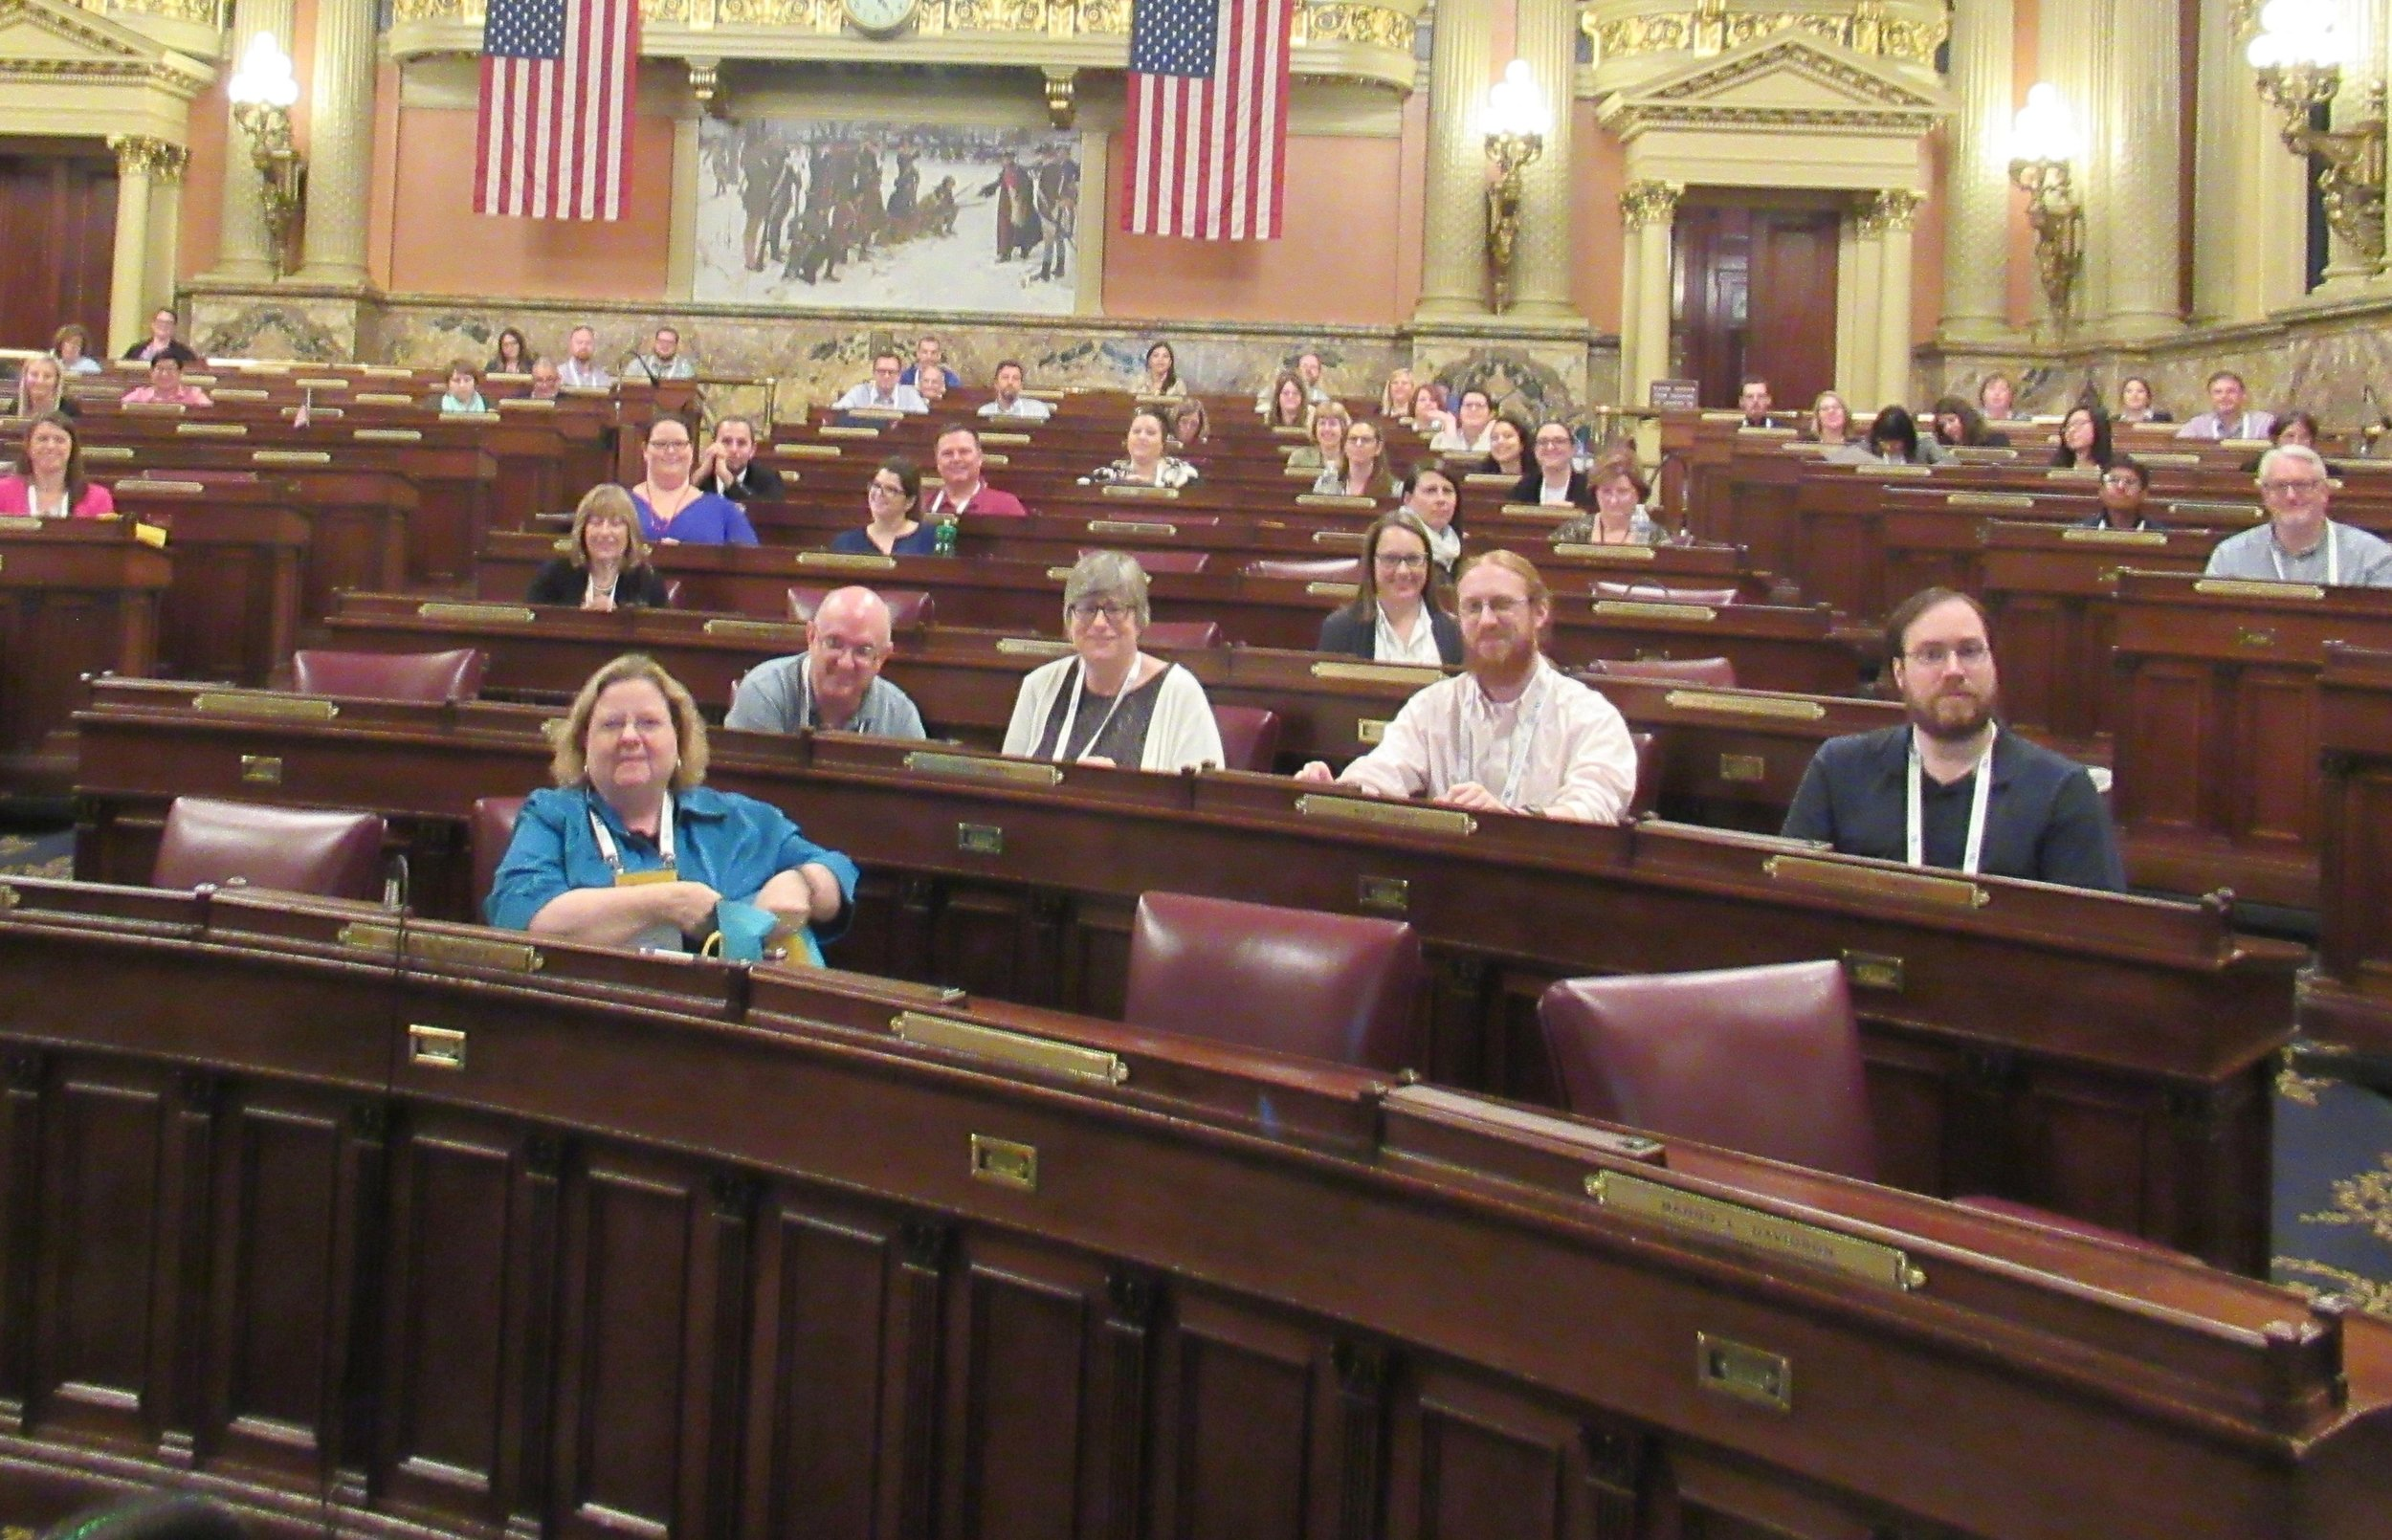 Not theater or classroom - but congressional seating! Yes, this was my room for a day. It was cool. I love my job!